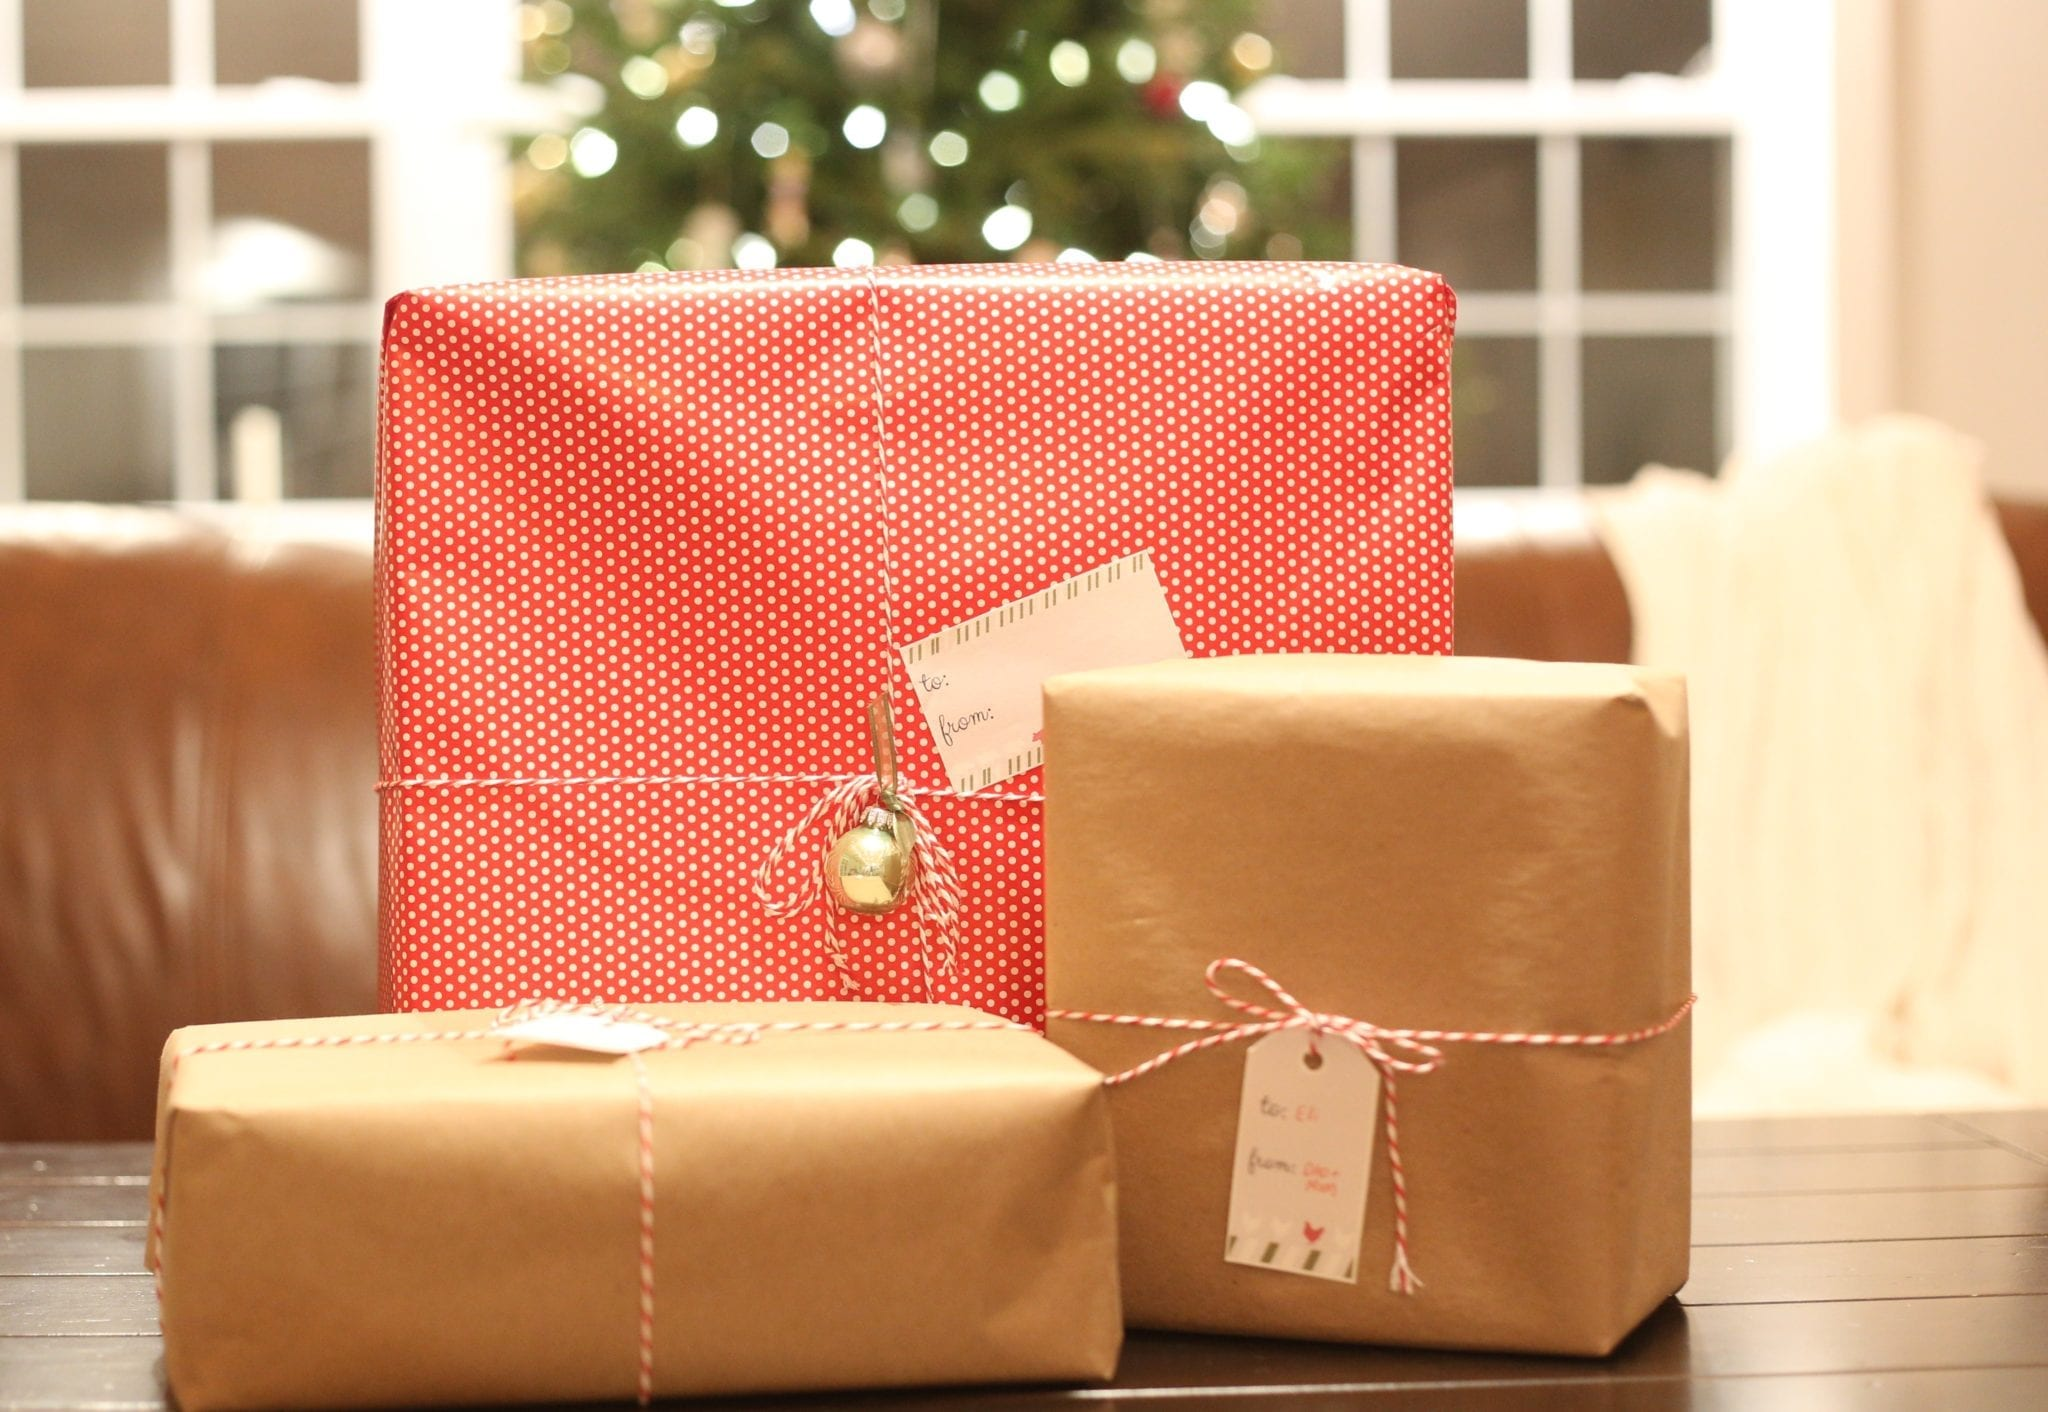 Wrapped Gifts with tags